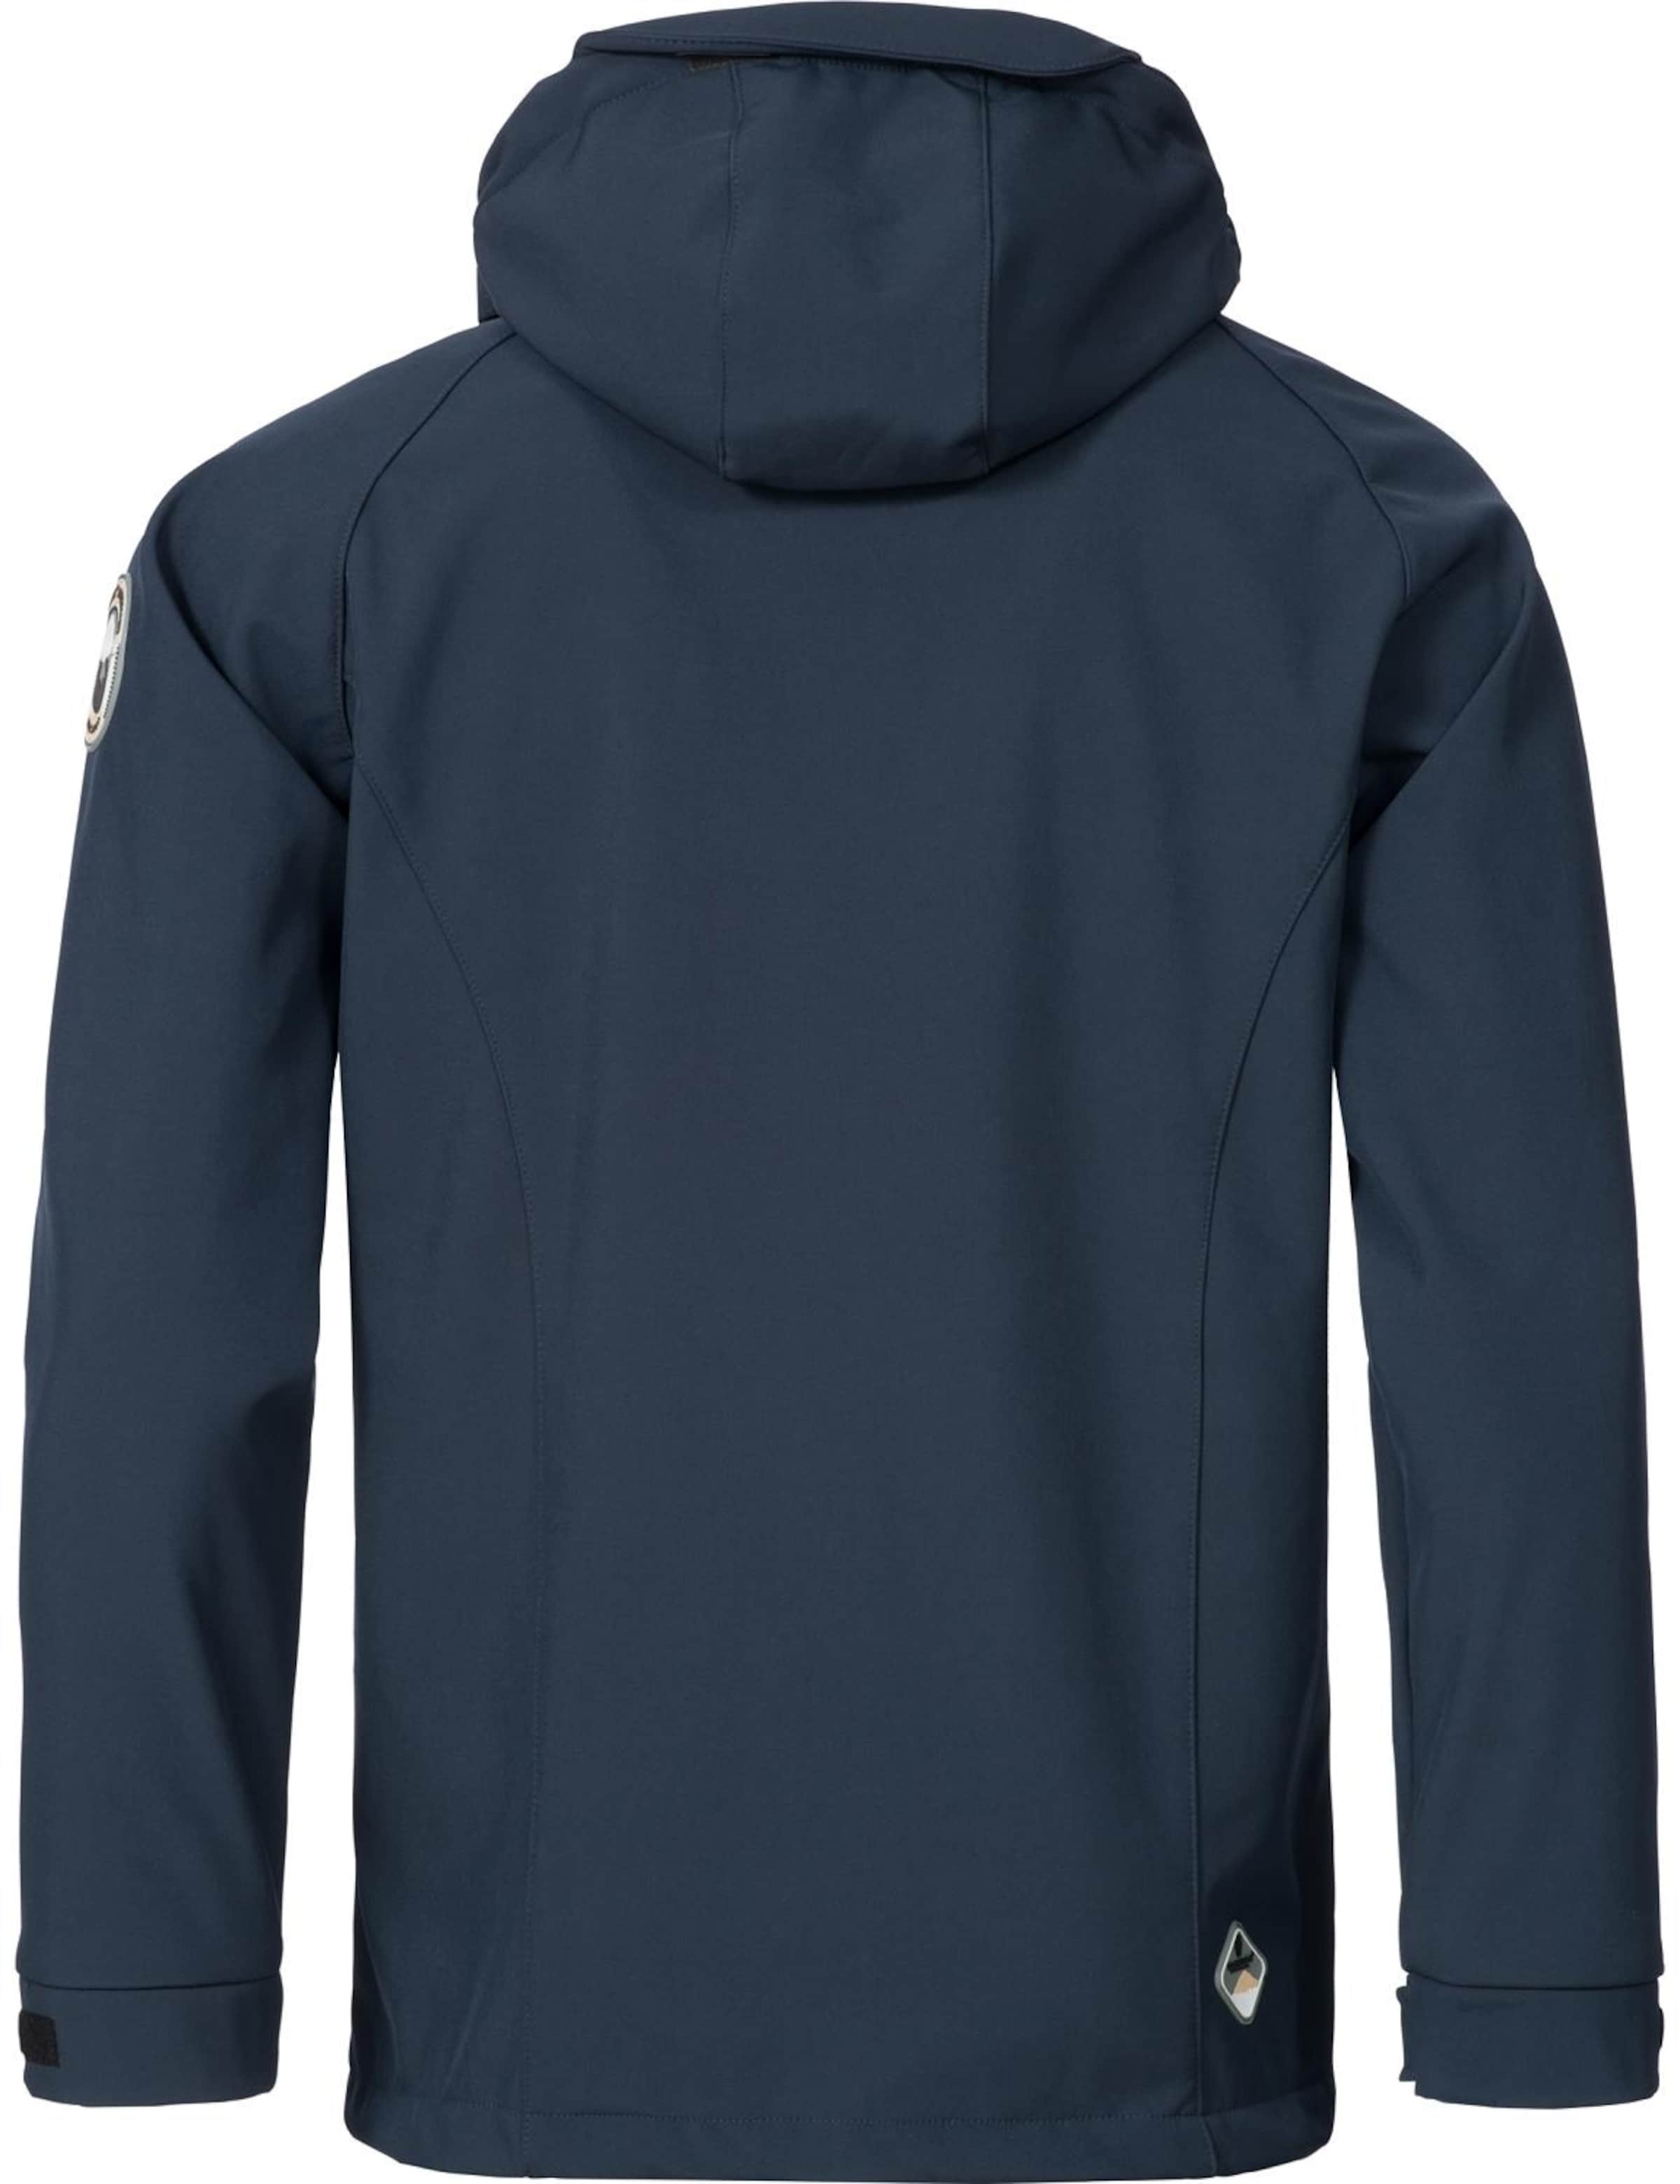 Jacke Marikoo 'noaa' Mountain In Navy MzqSVUp